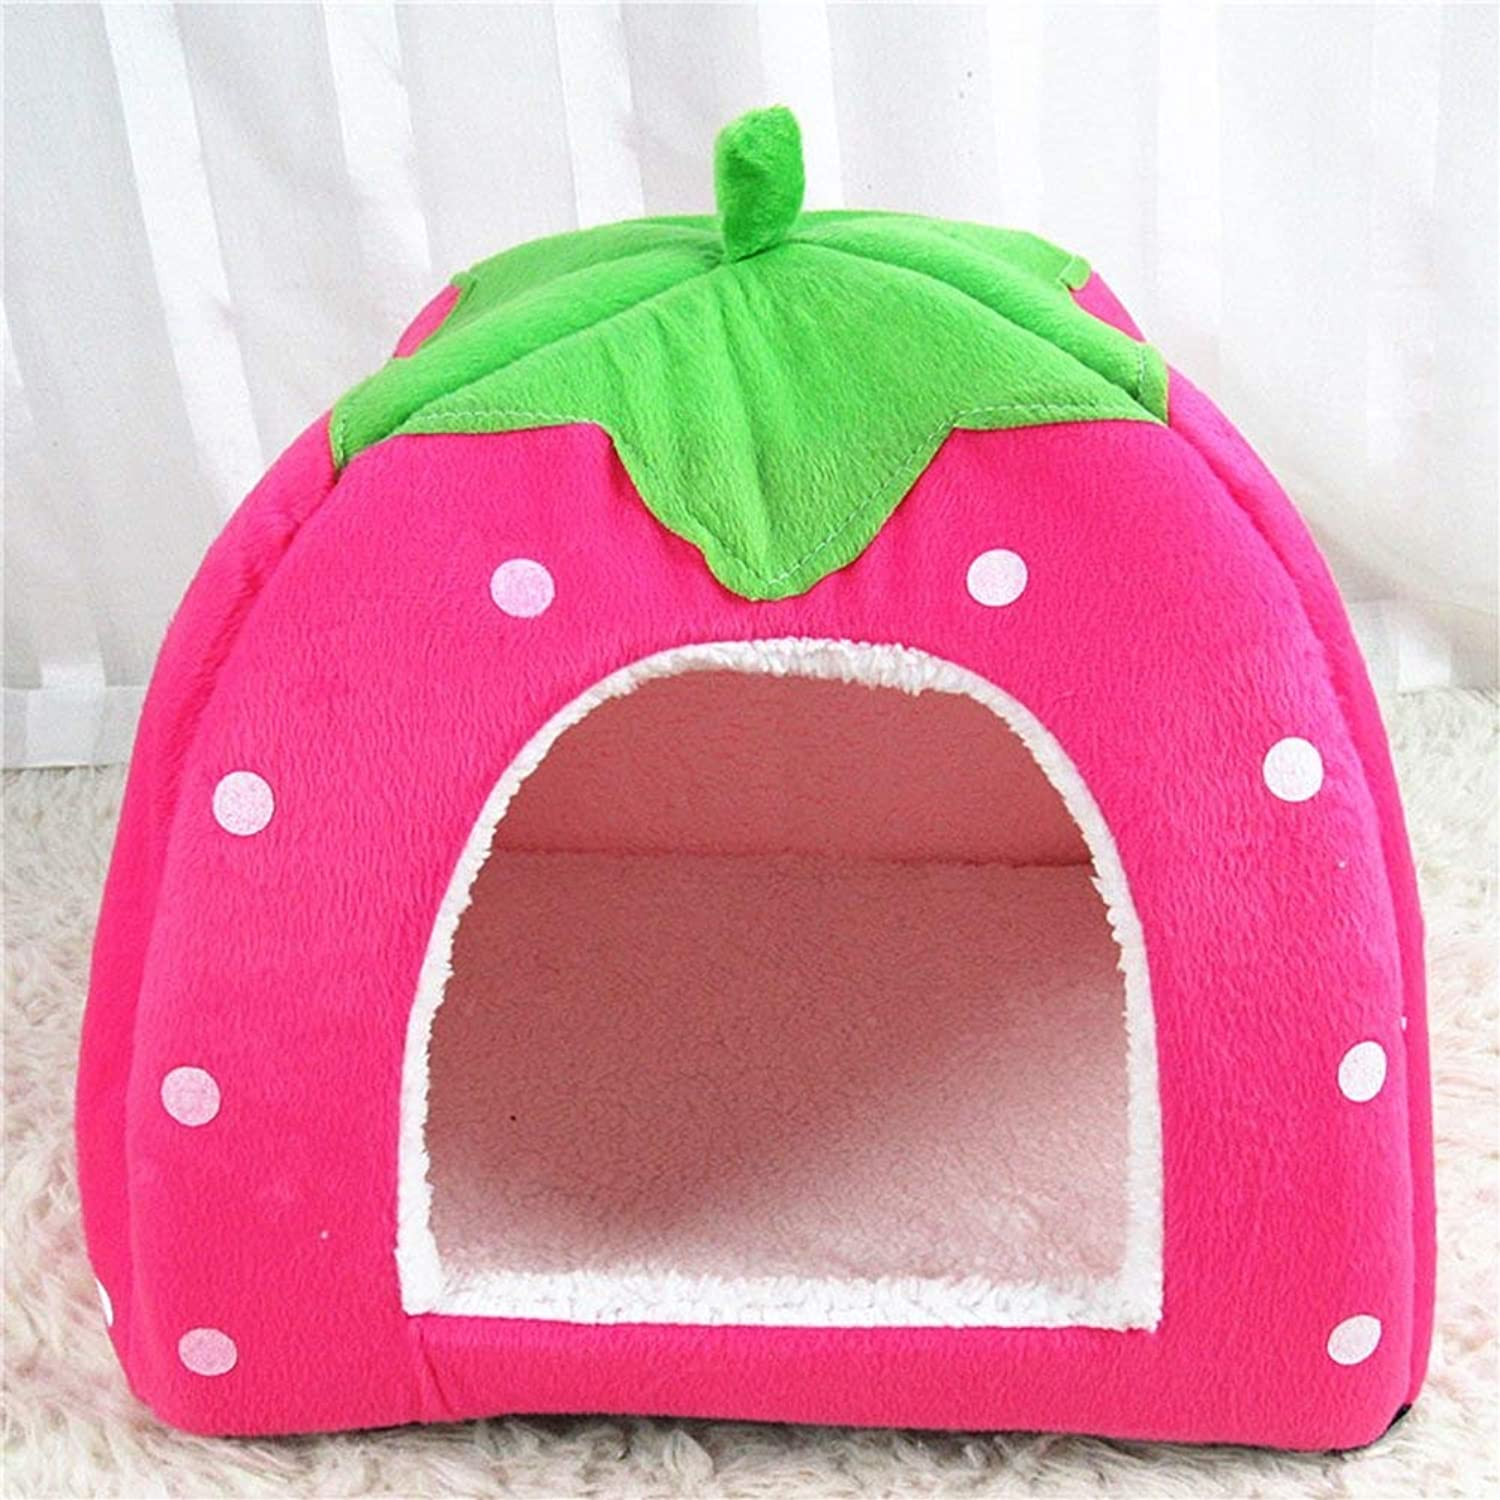 Pet Sofa Dog Kennel Detachable Pet House Cat Litter House Taidibi Bear Puppies Small Dogs Dog Supplies Four Seasons (color   Pink, Size   Medium)